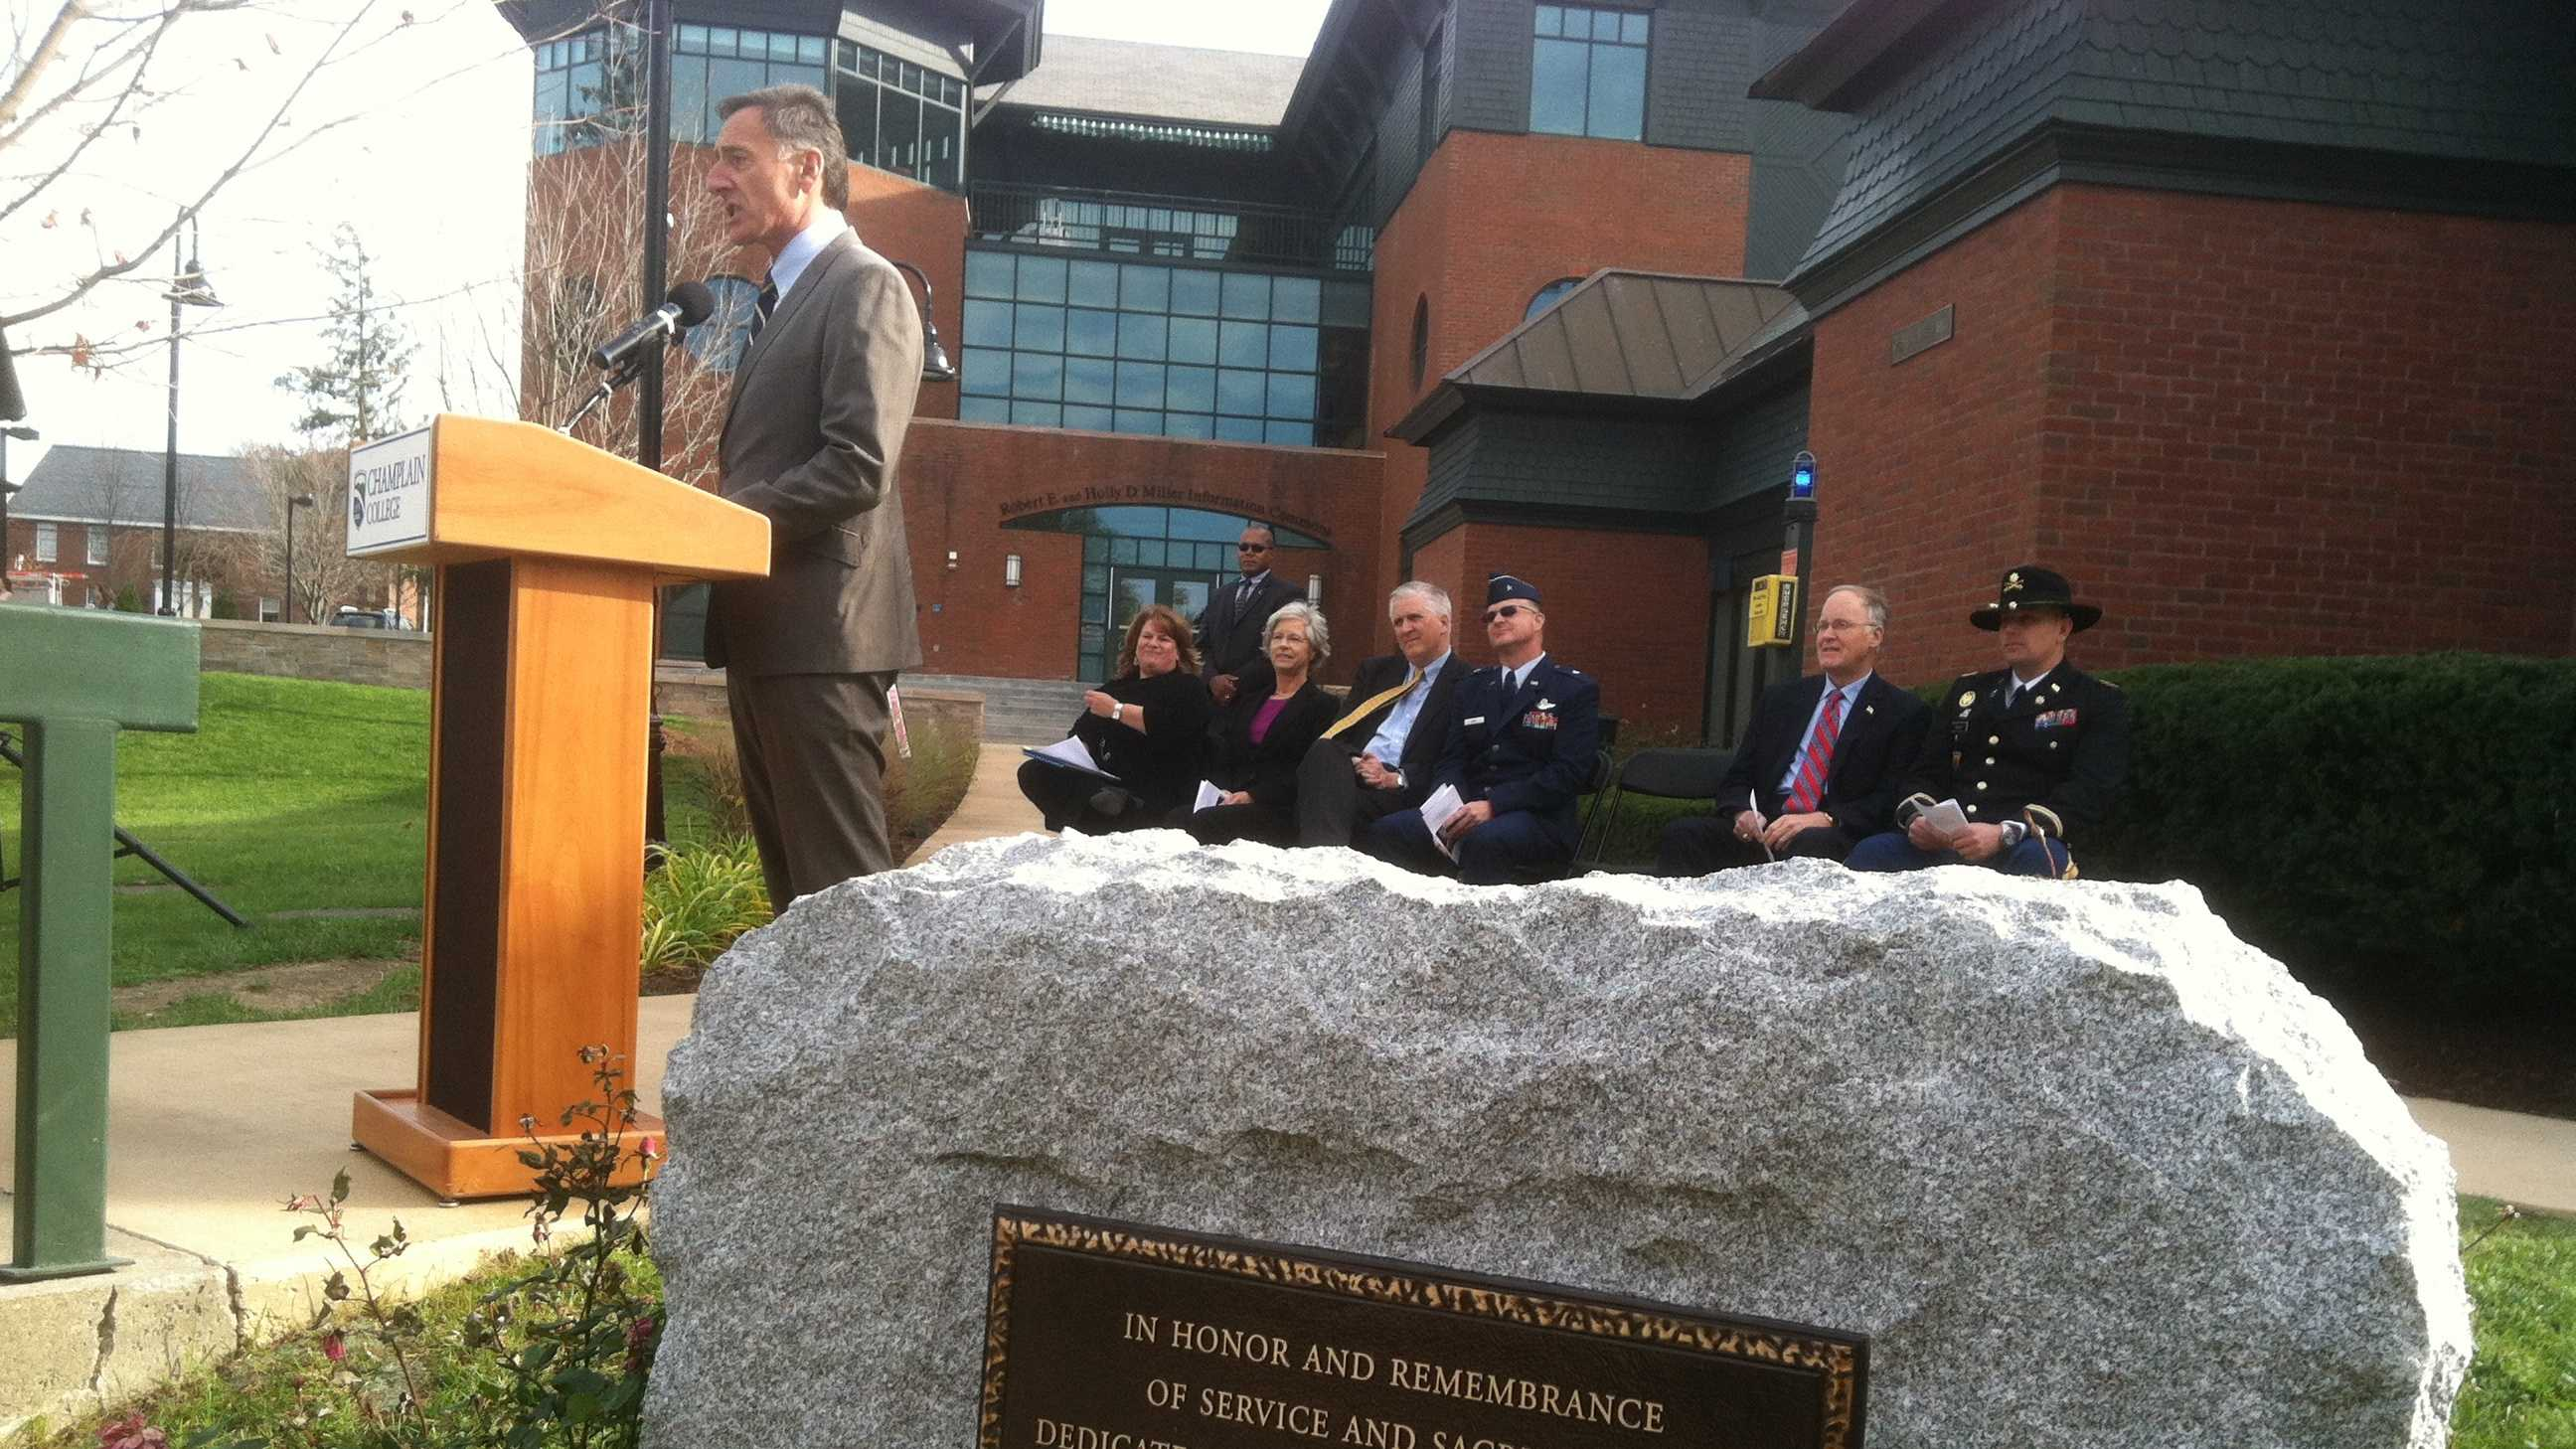 111212 Vt. college unveils new monument to student veterans - img